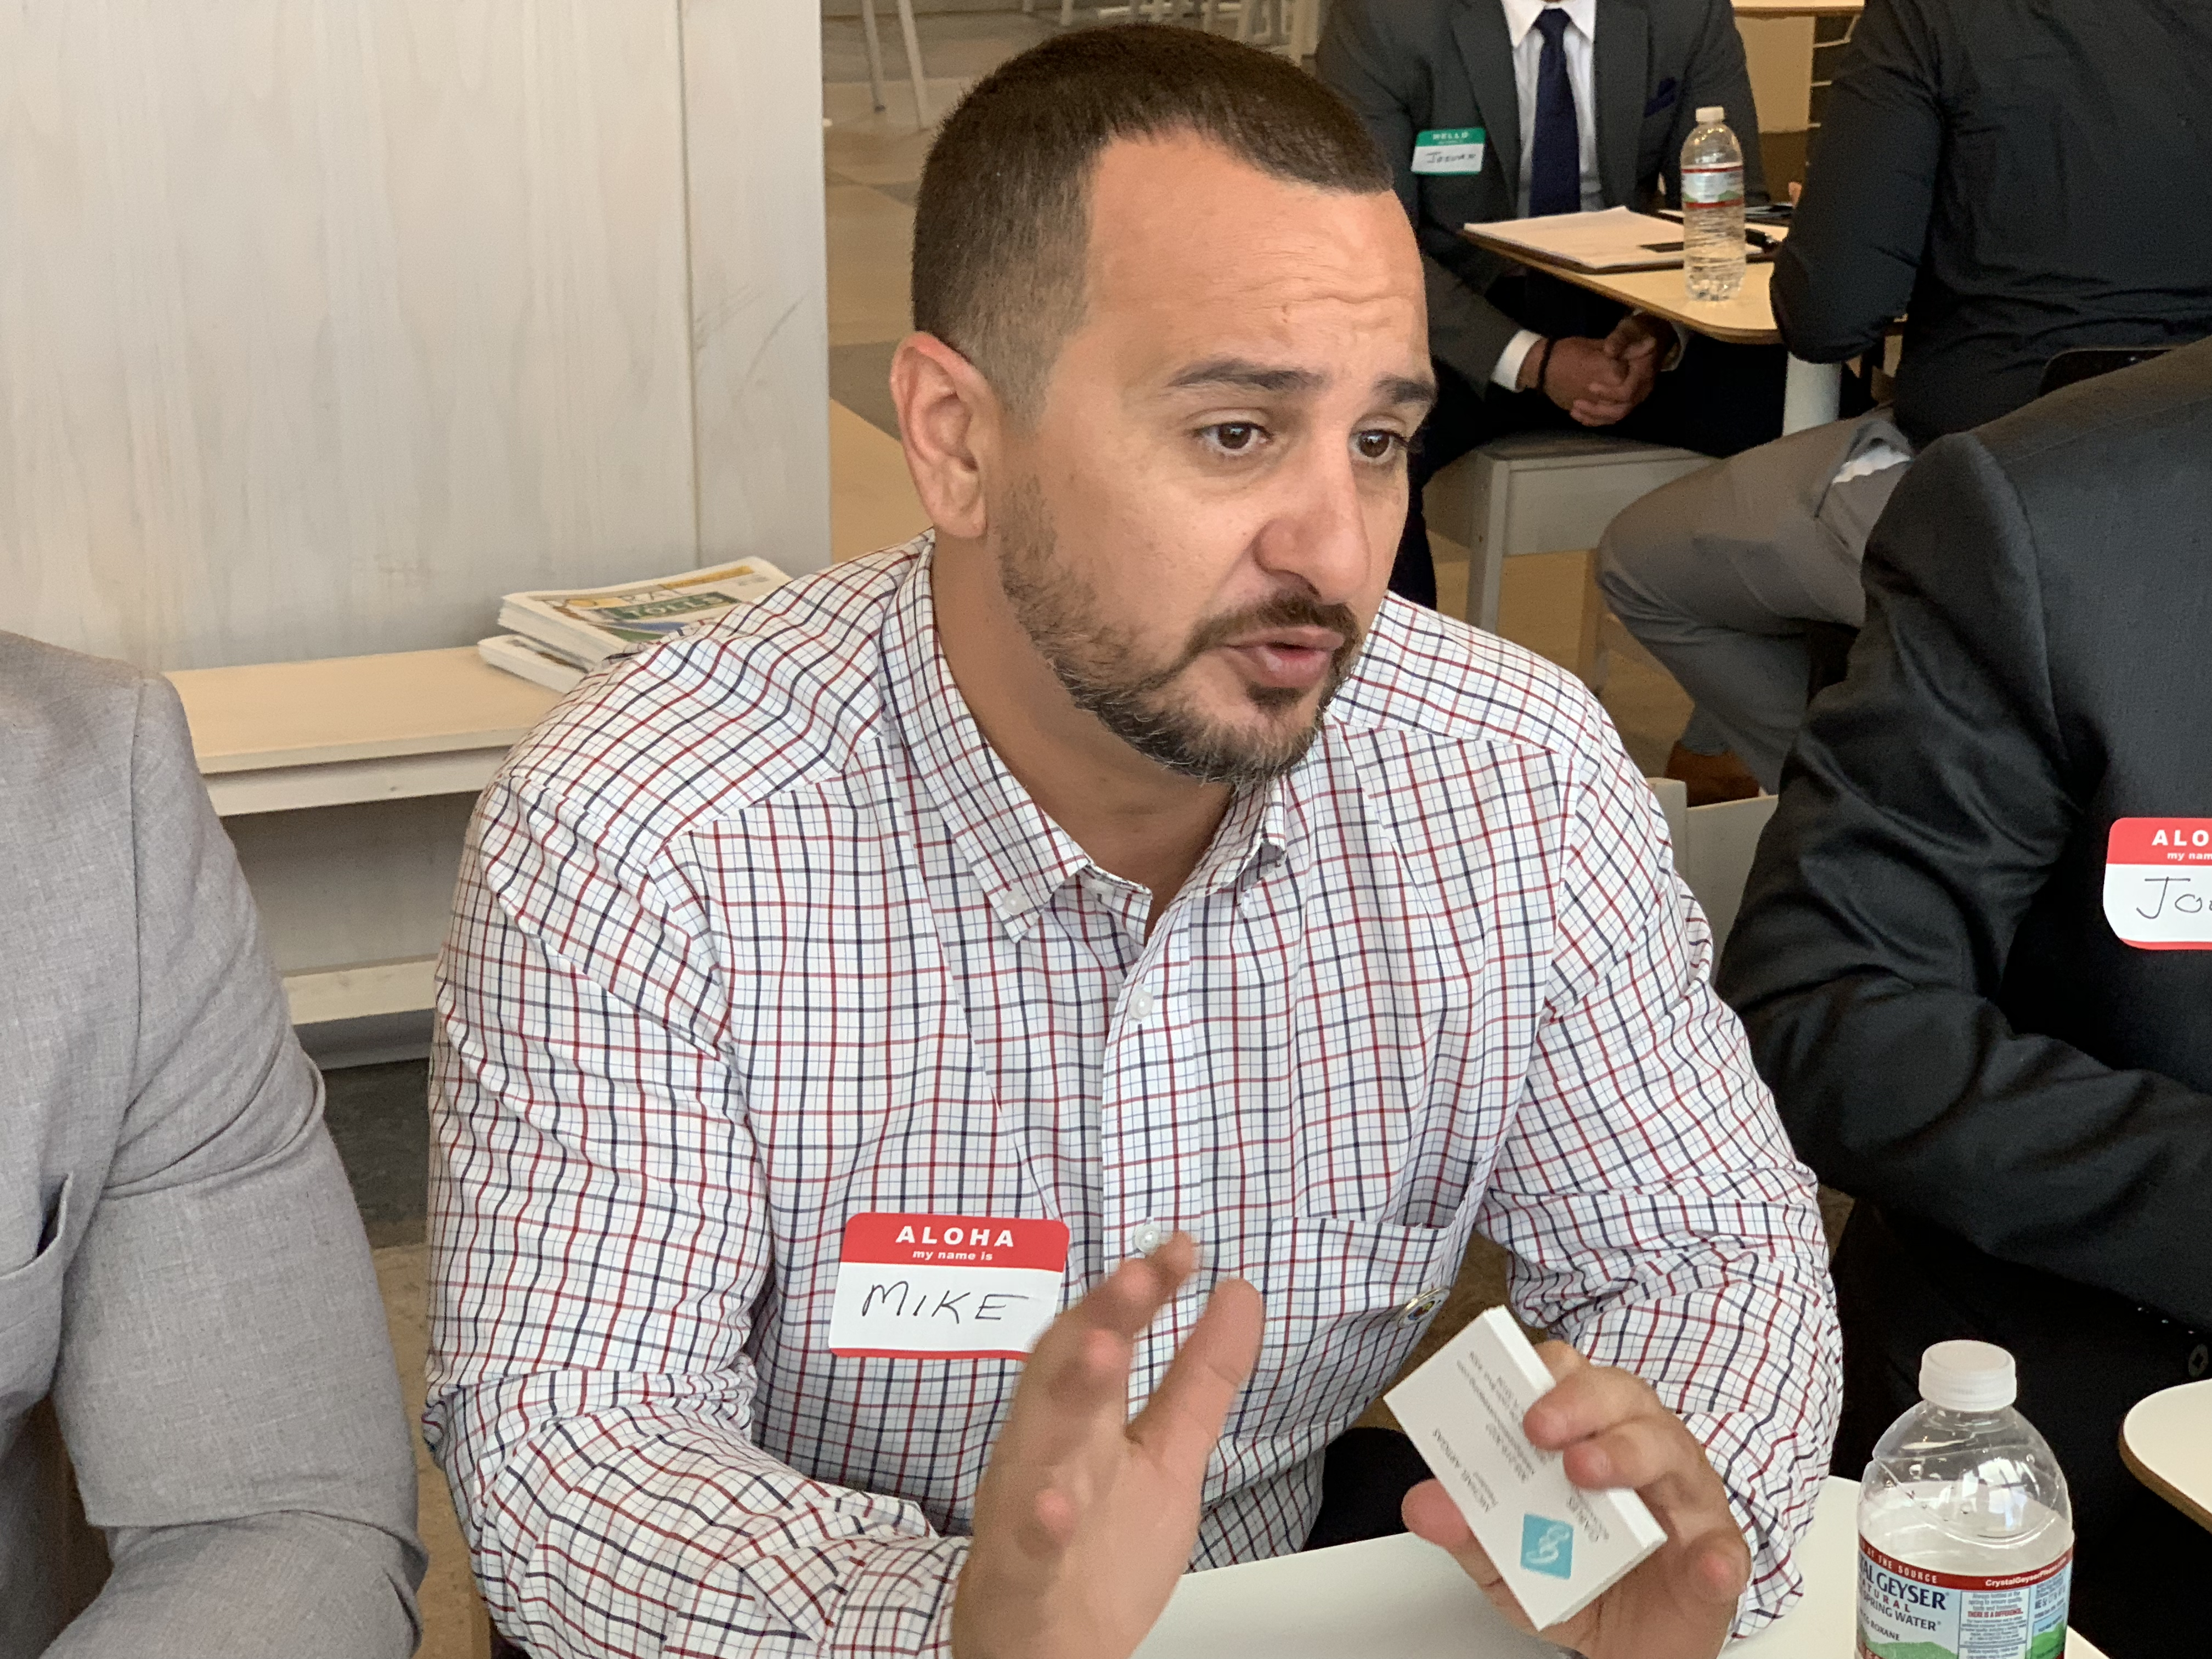 Doral Chamber of Commerce IKEA Speed Networking Event, member talking about his business before he passes his business card, creating a relationship.